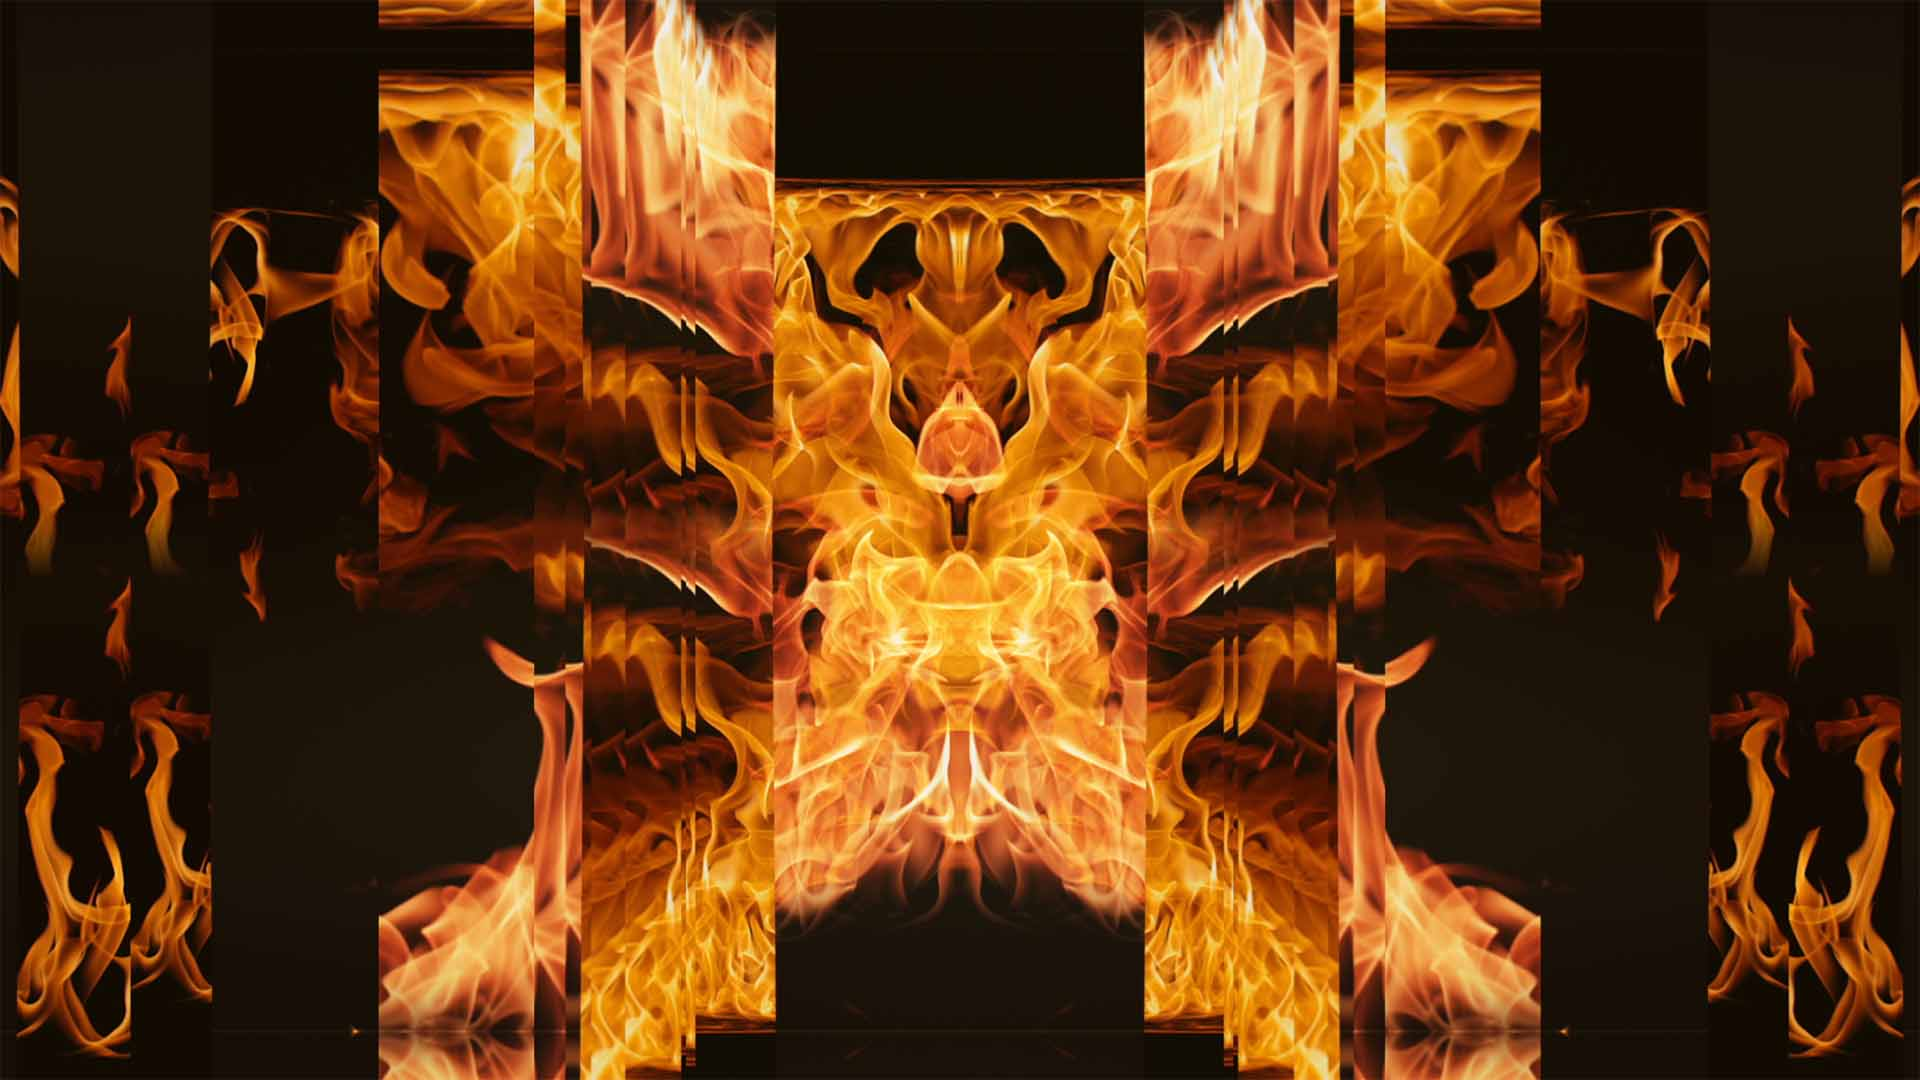 Abstract Fire Video Background